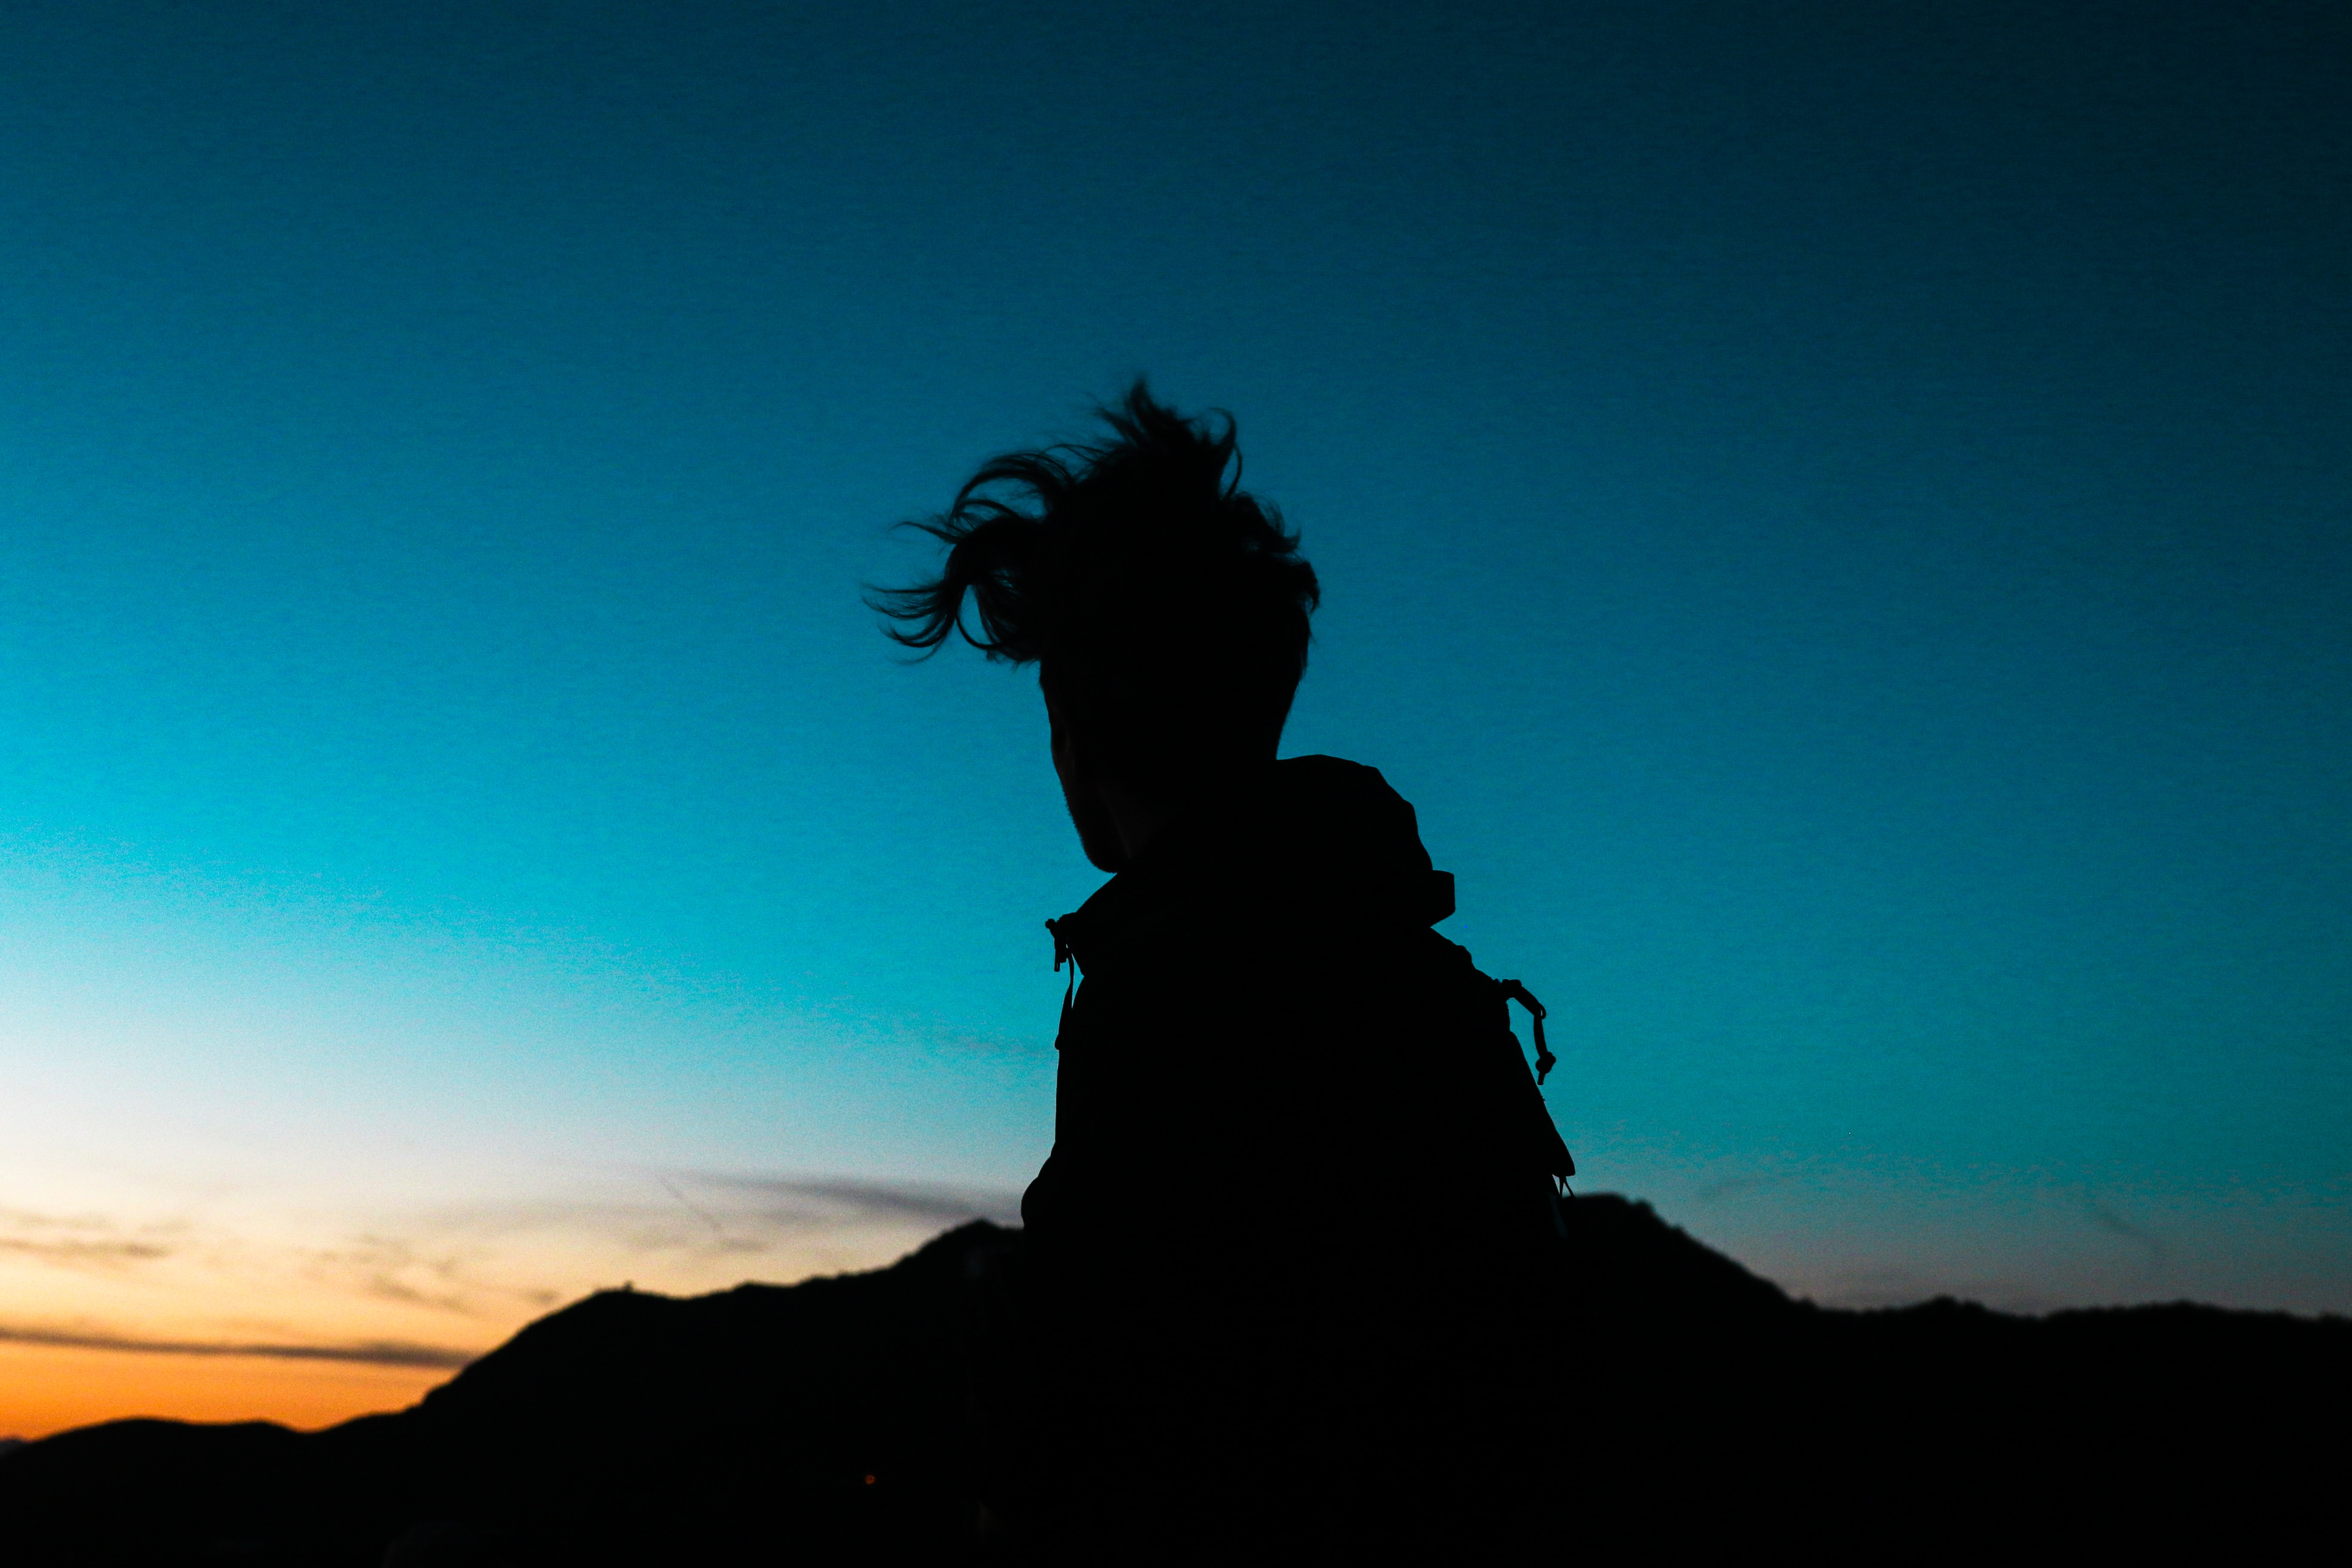 A person with their hair flying in the winds silhouette against the sky at sunset in Los Angeles